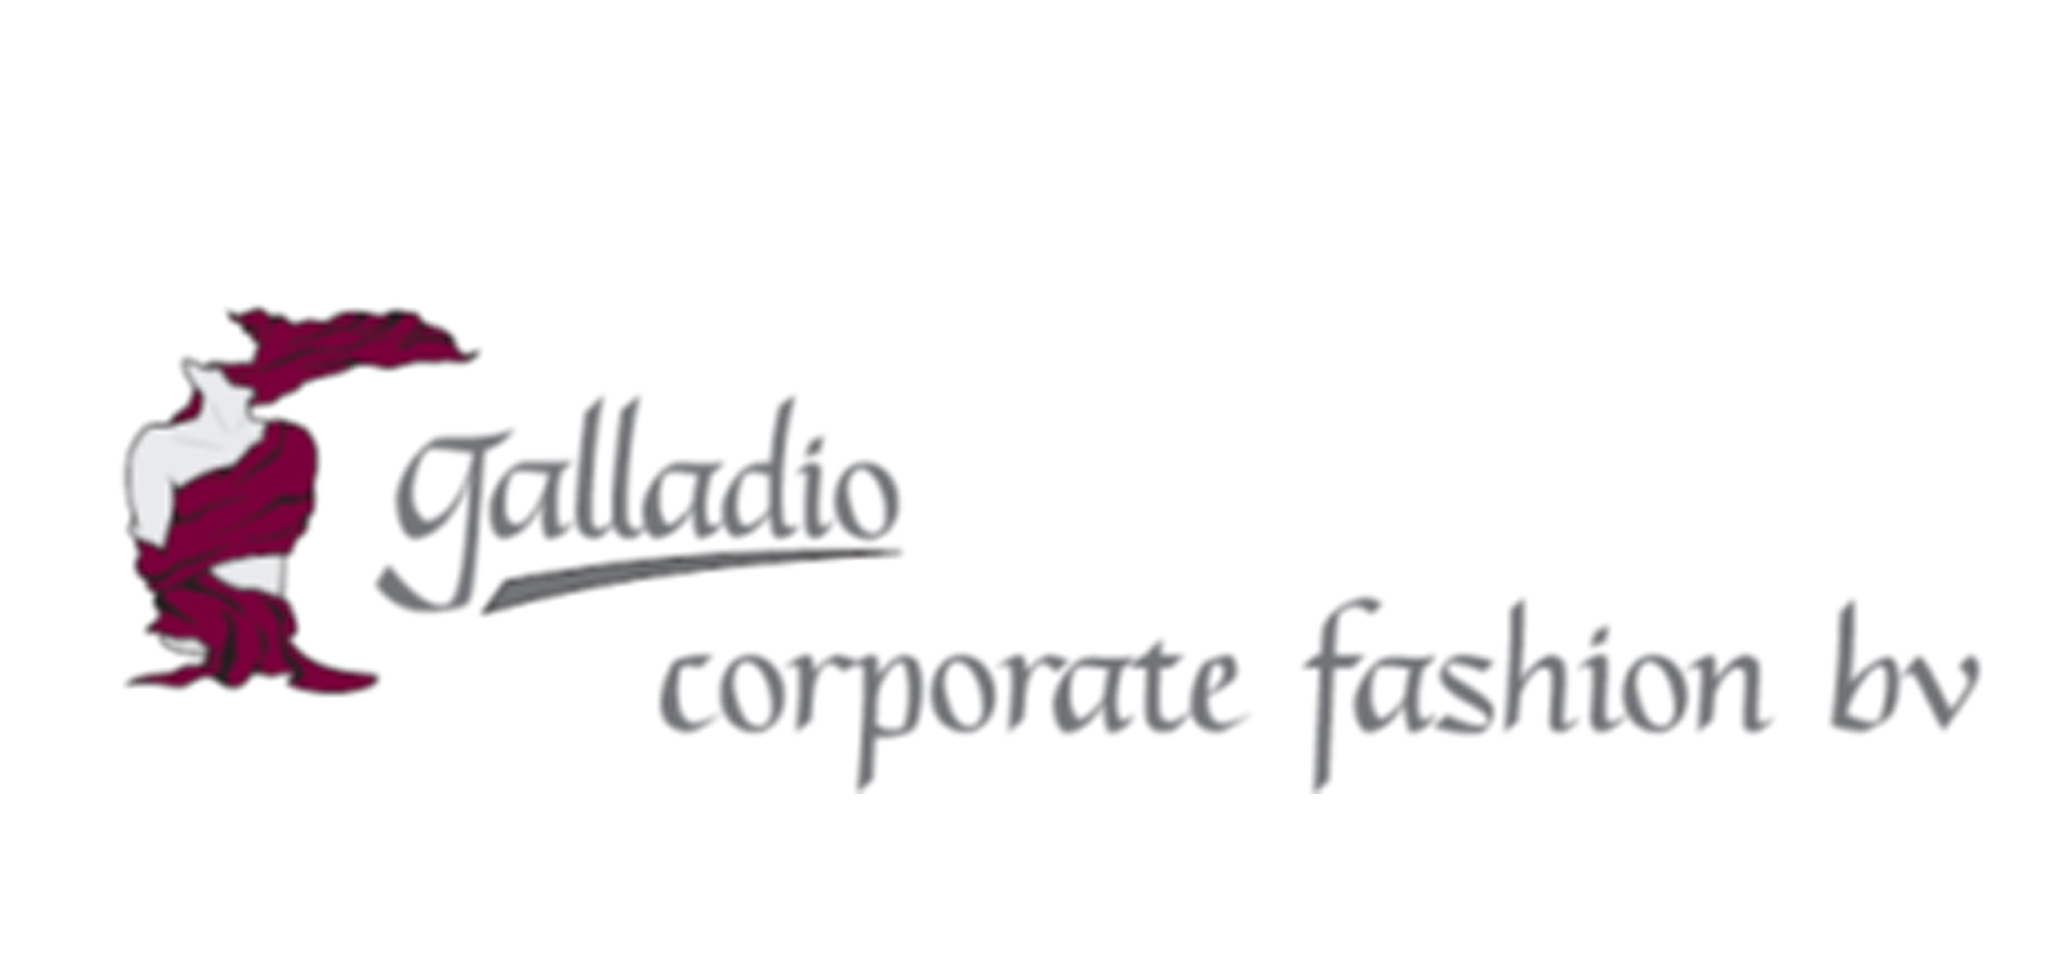 Logo Galladio Corporate Fashion B.V